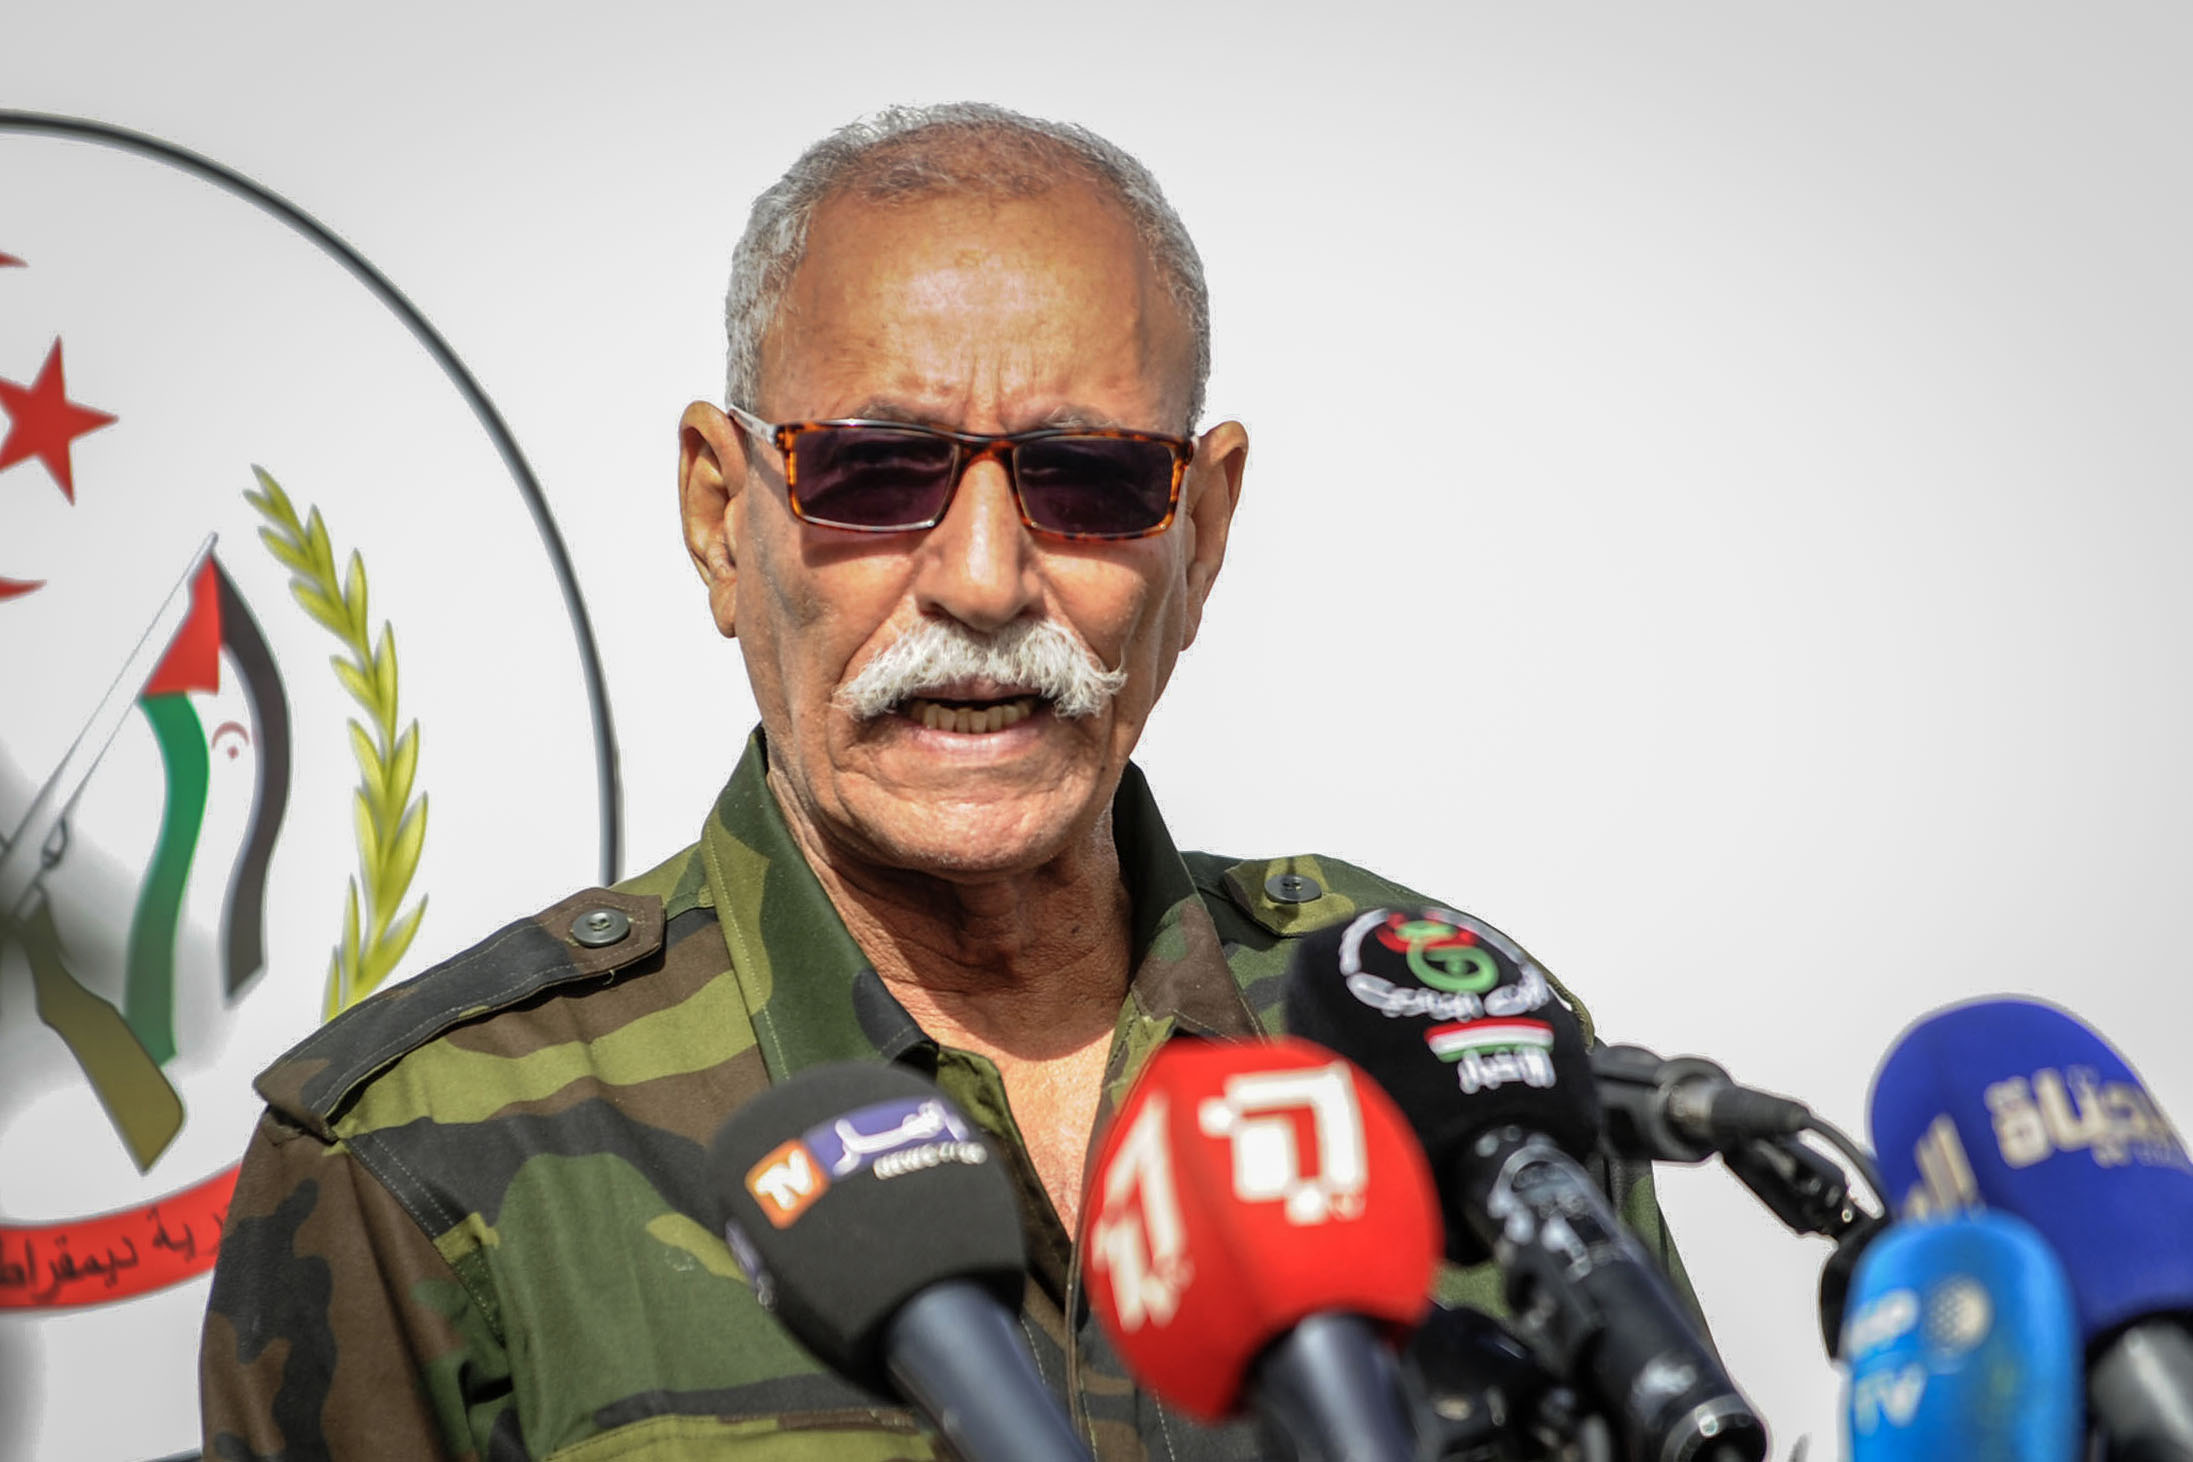 FILED - 27 February 2021, Algeria, Tindouf: Sahrawi President Brahim Ghali speaks during a military parade marking the 45th anniversary of the declaration of the Sahrawi Arab Democratic Republic (SADR), near the south-western Algerian city of Tindouf, considered as the Sahrawi capital in exile. Ghali has been hospitalized in Spain for treatment of COVID-19. Photo: STR/dpa   (Foto de ARCHIVO) 27/2/2021 ONLY FOR USE IN SPAIN